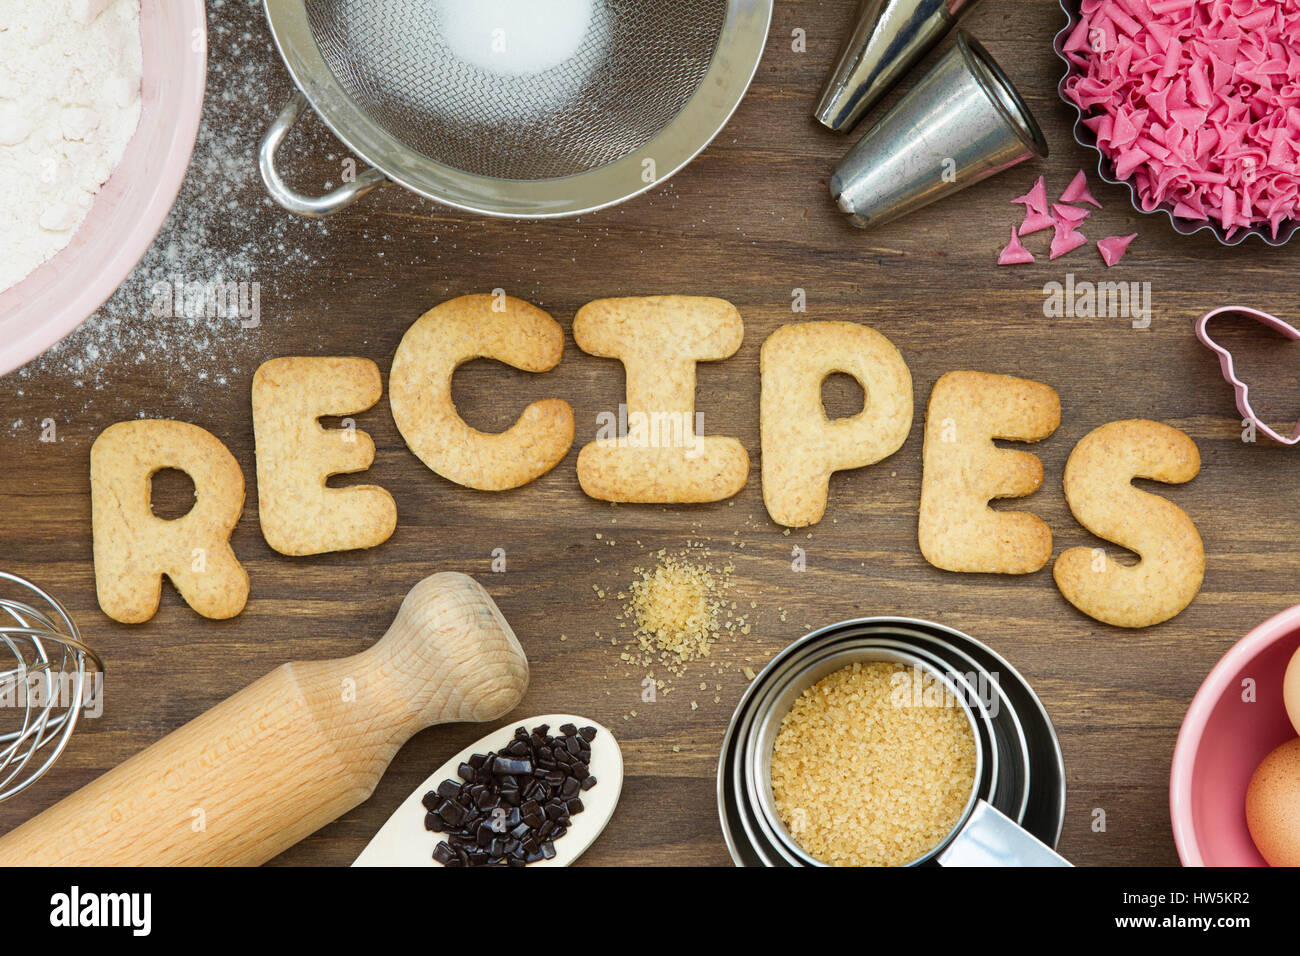 Cookies forming the word recipes - Stock Image